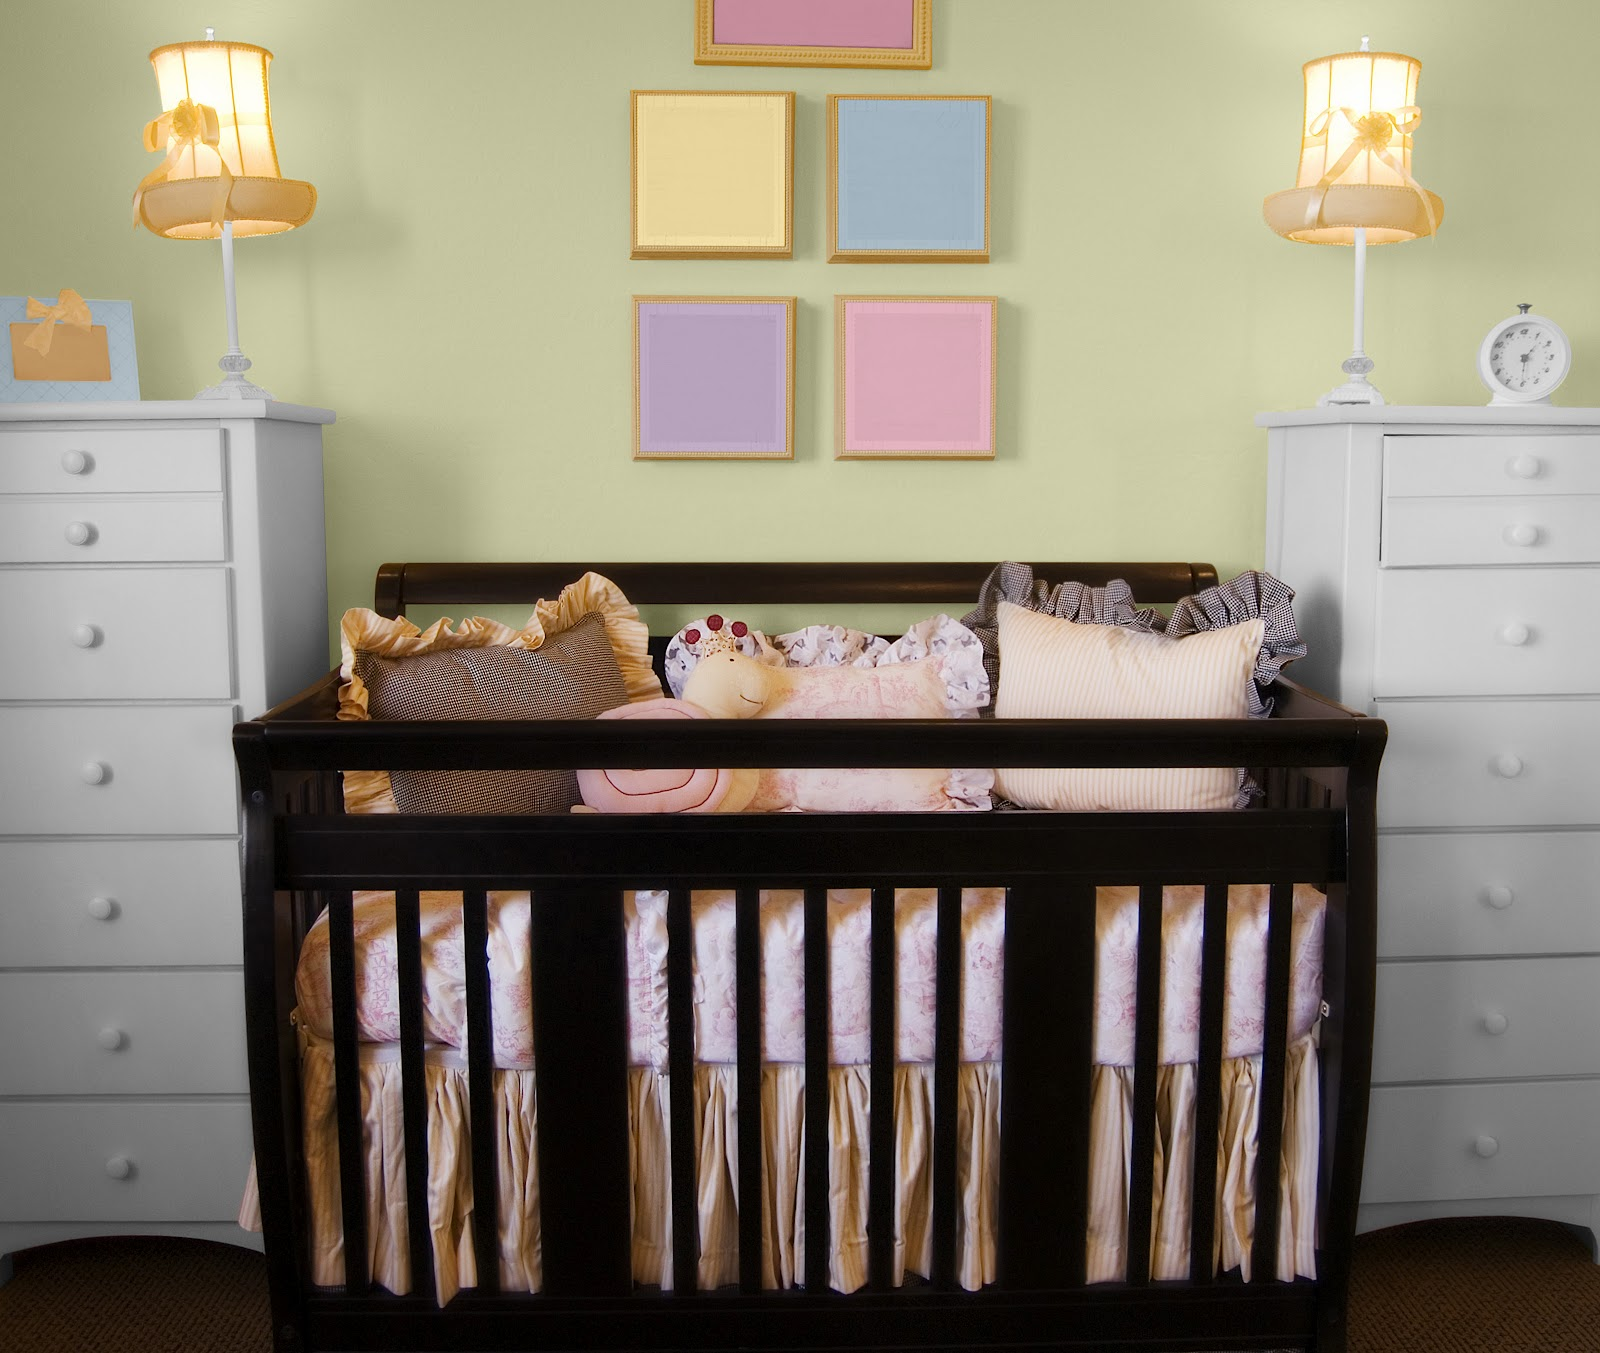 Top 10 baby nursery room colors and decorating ideas for Baby nursery decoration ideas